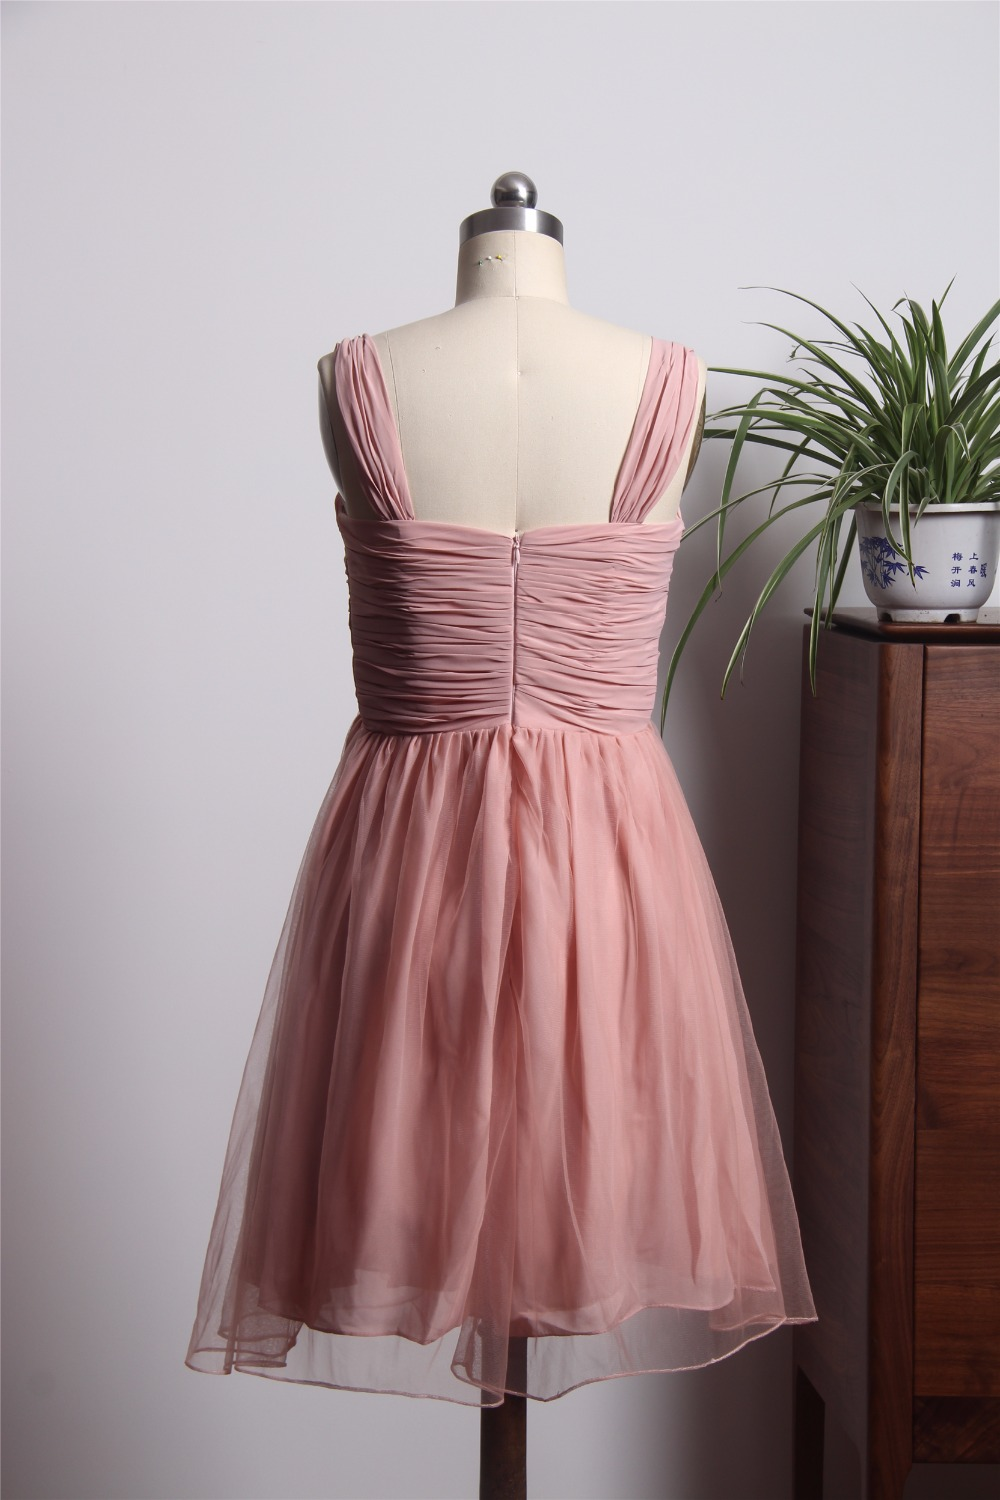 Stunning sweetheart bridesmaid dresses short mini chiffon dress stunning sweetheart bridesmaid dresses short mini chiffon dress for wedding party demoiselle dhonneur femme in bridesmaid dresses from weddings events ombrellifo Images